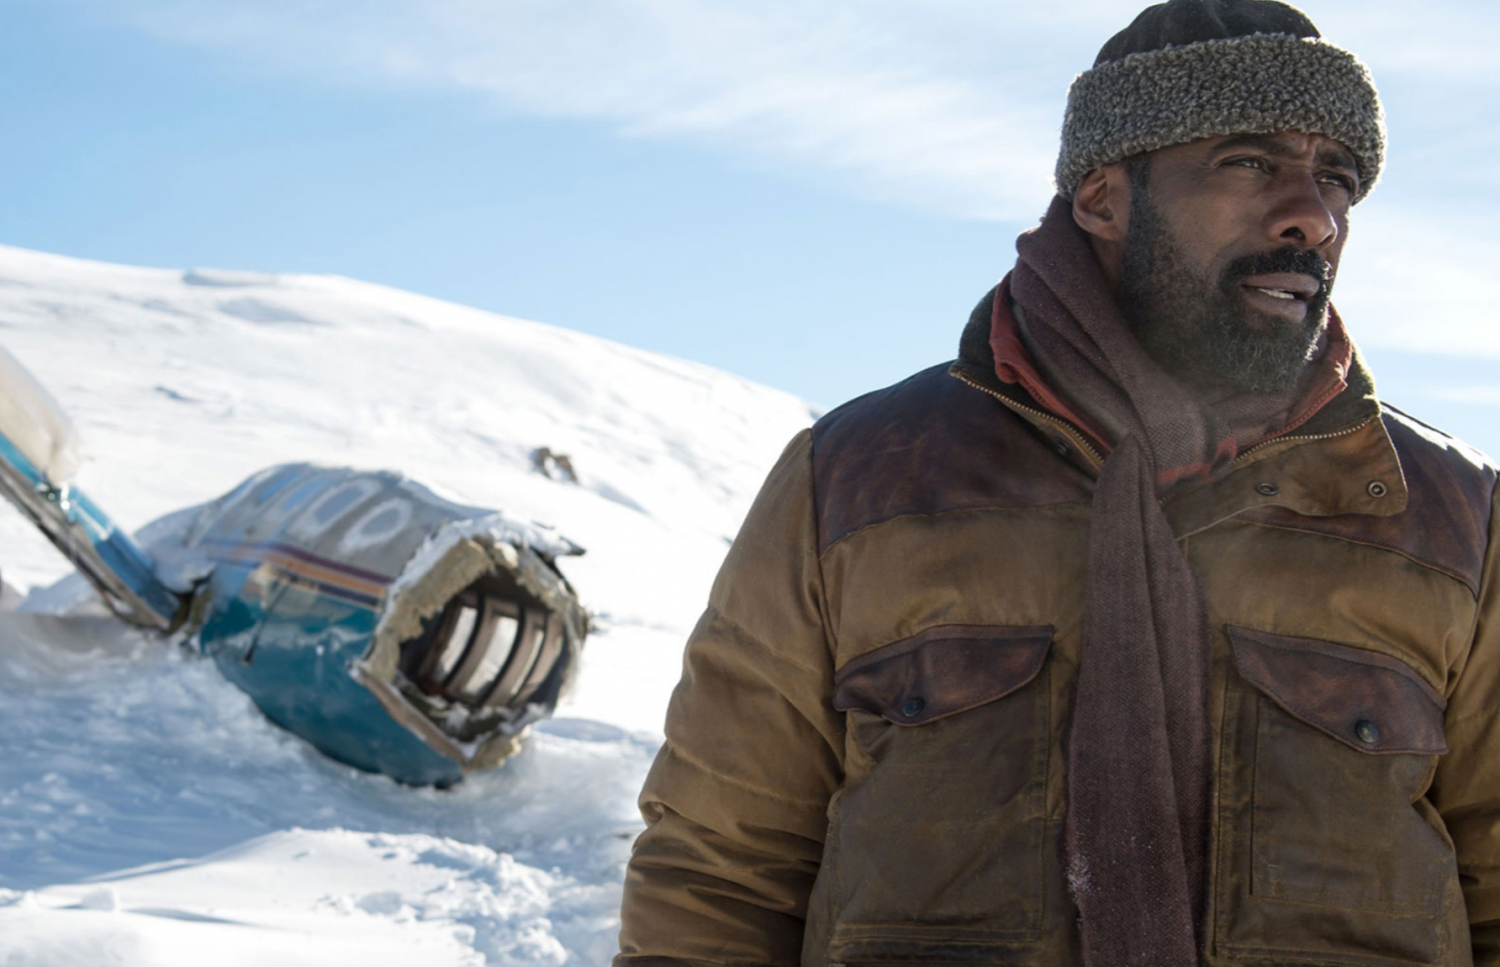 Photo courtesy of 20th Century Fox Pictures. Bass (Elba) considers whether to stay, in hopes of a rescue, or to abandon the plane in search of help.